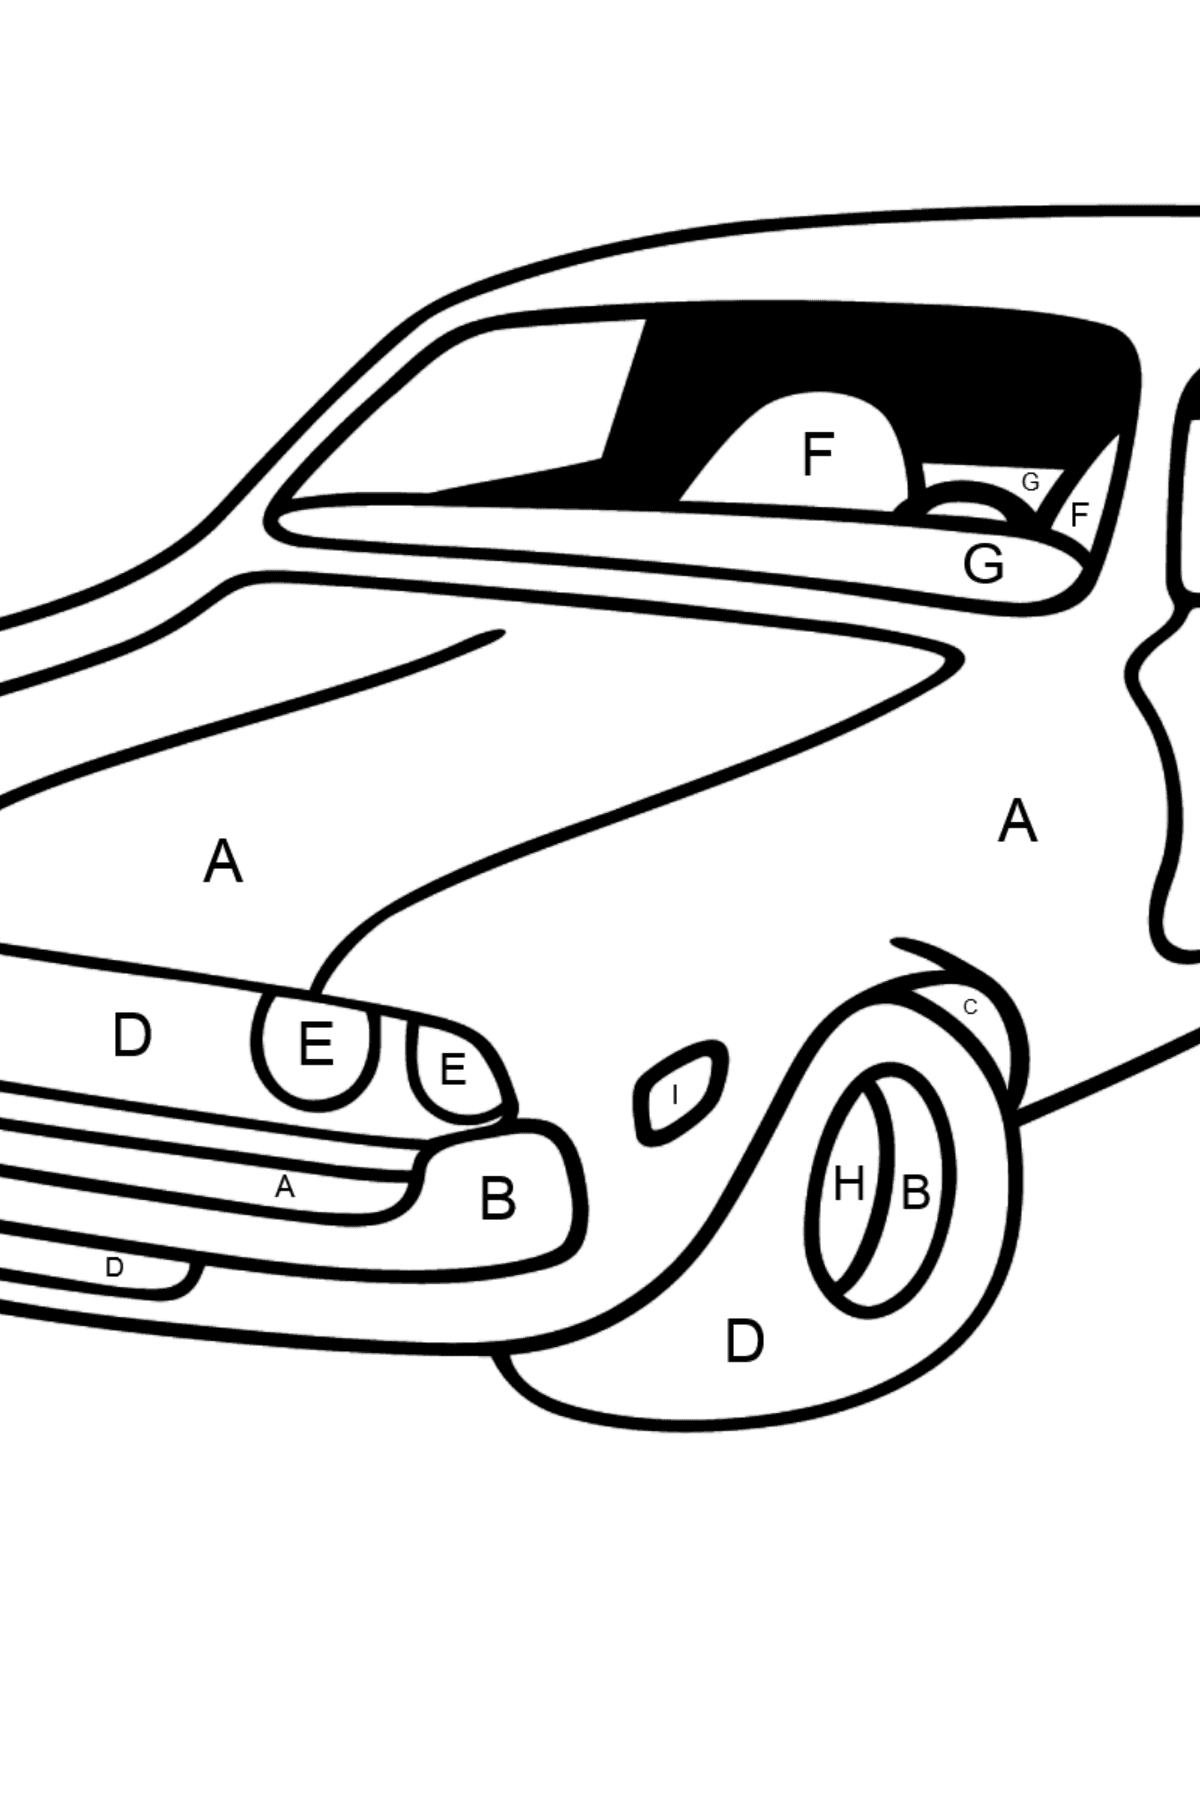 Chevrolet gray car coloring page - Coloring by Letters for Kids